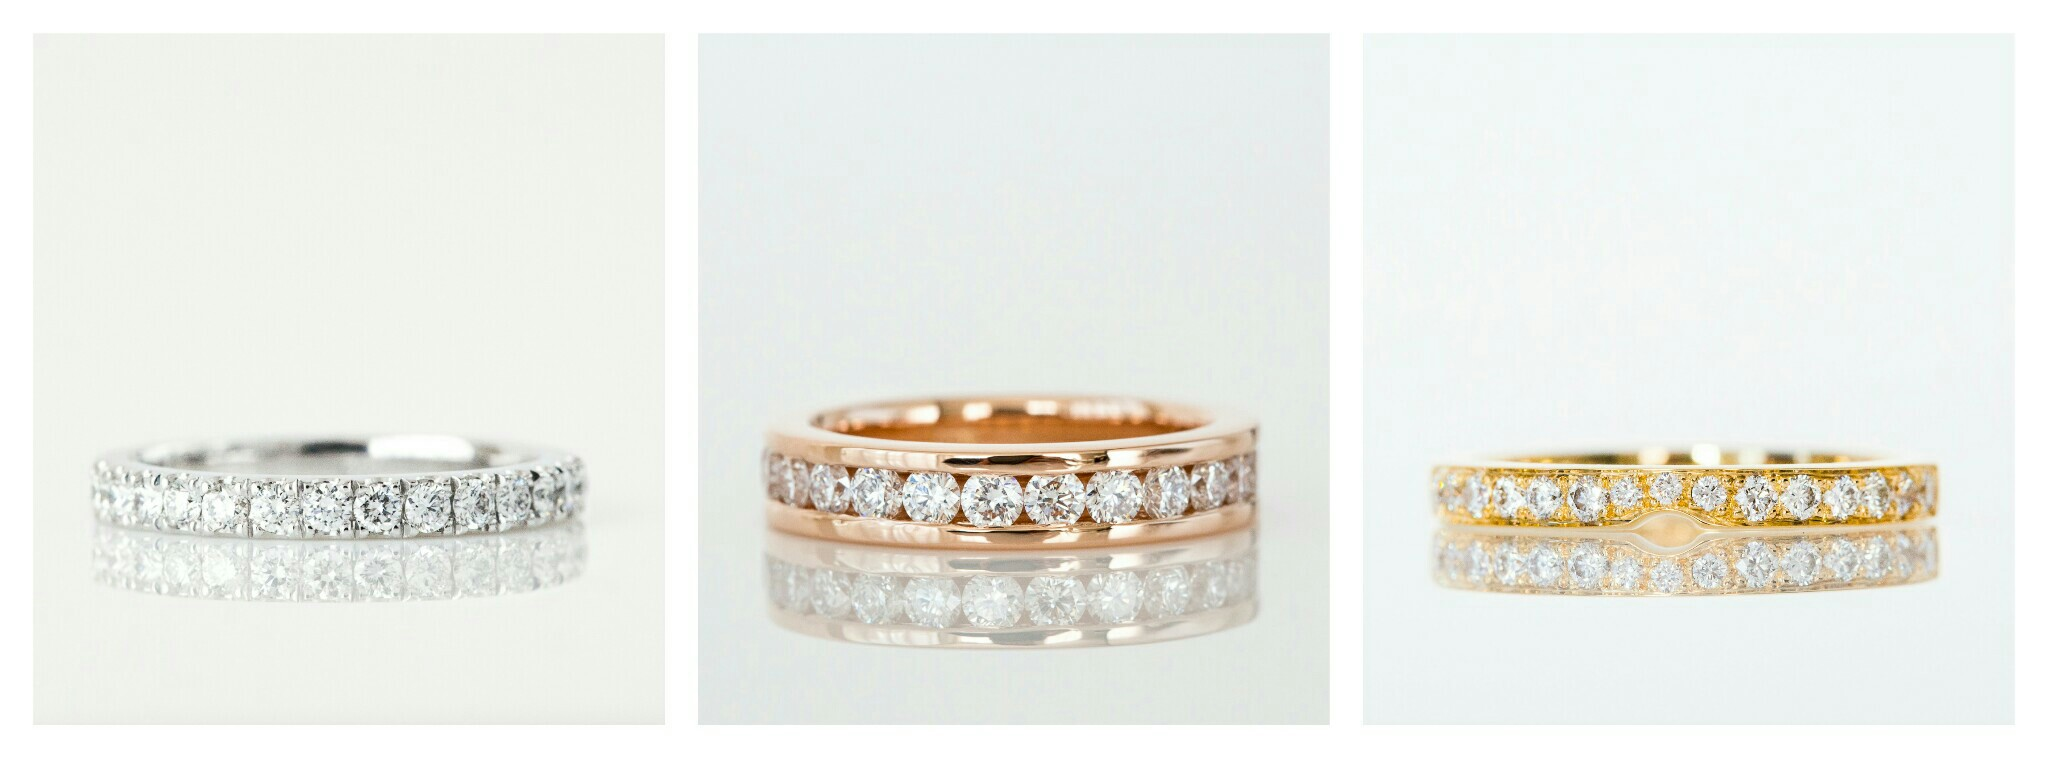 Womens wedding rings - Harlequin Jewellers Canberra